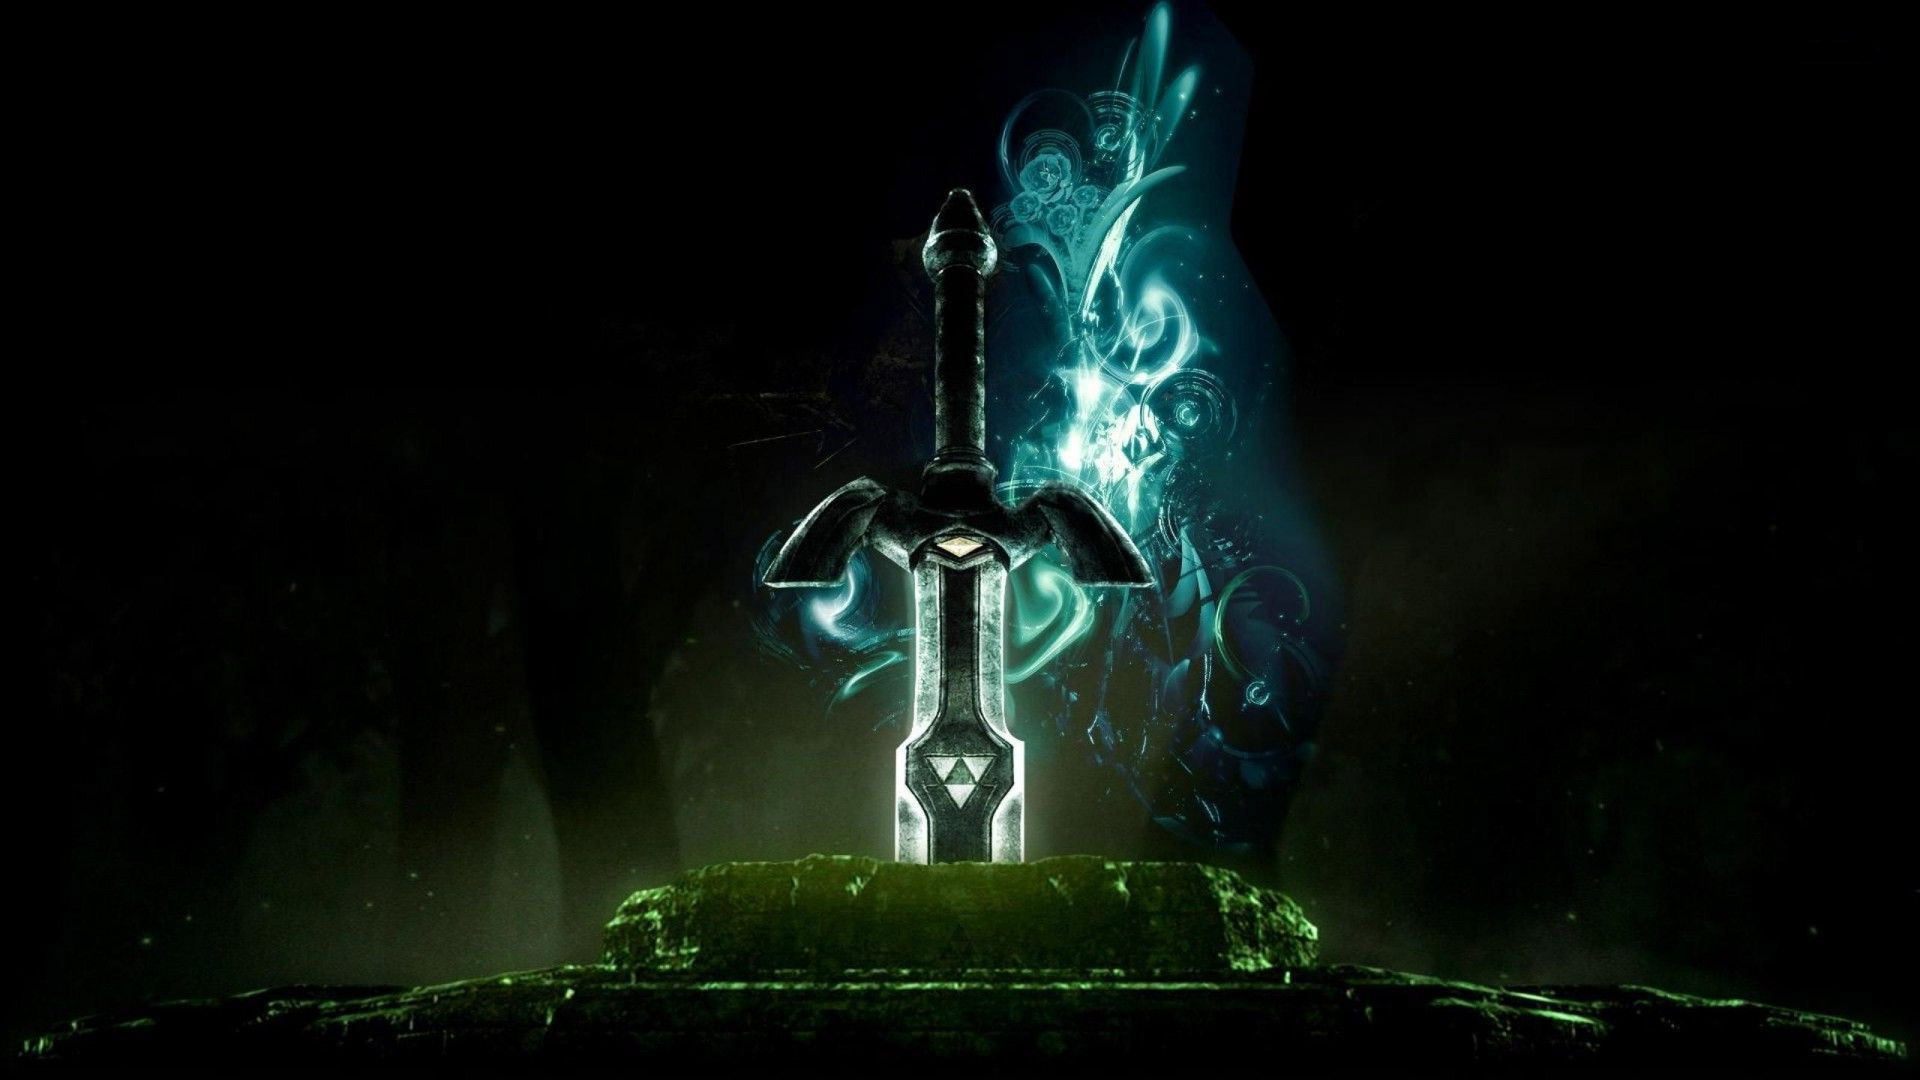 hd zelda wallpapers - photo #16